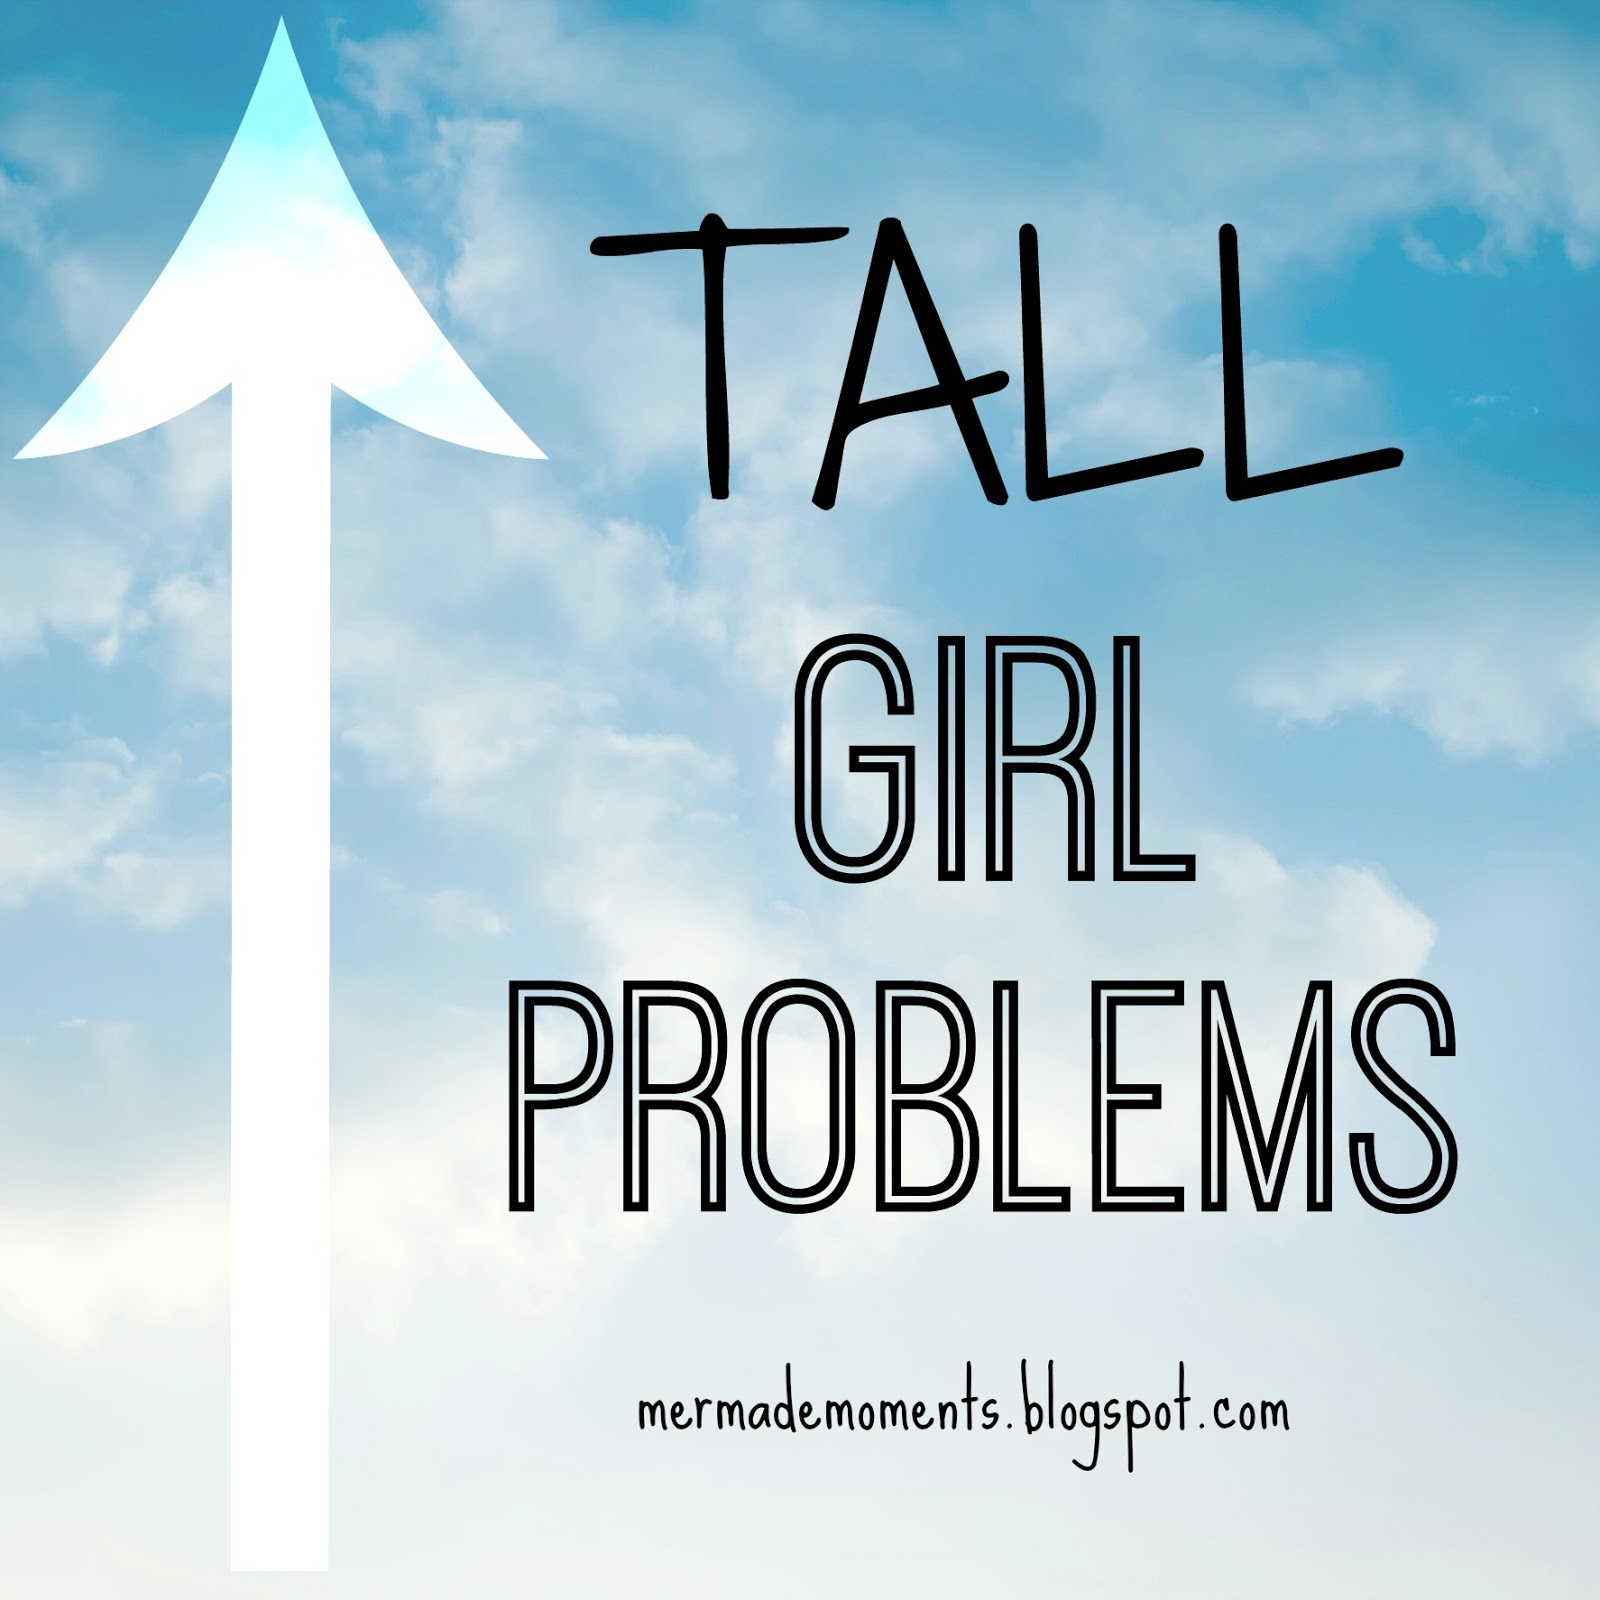 Mermade Moments: Tall Girl Problems